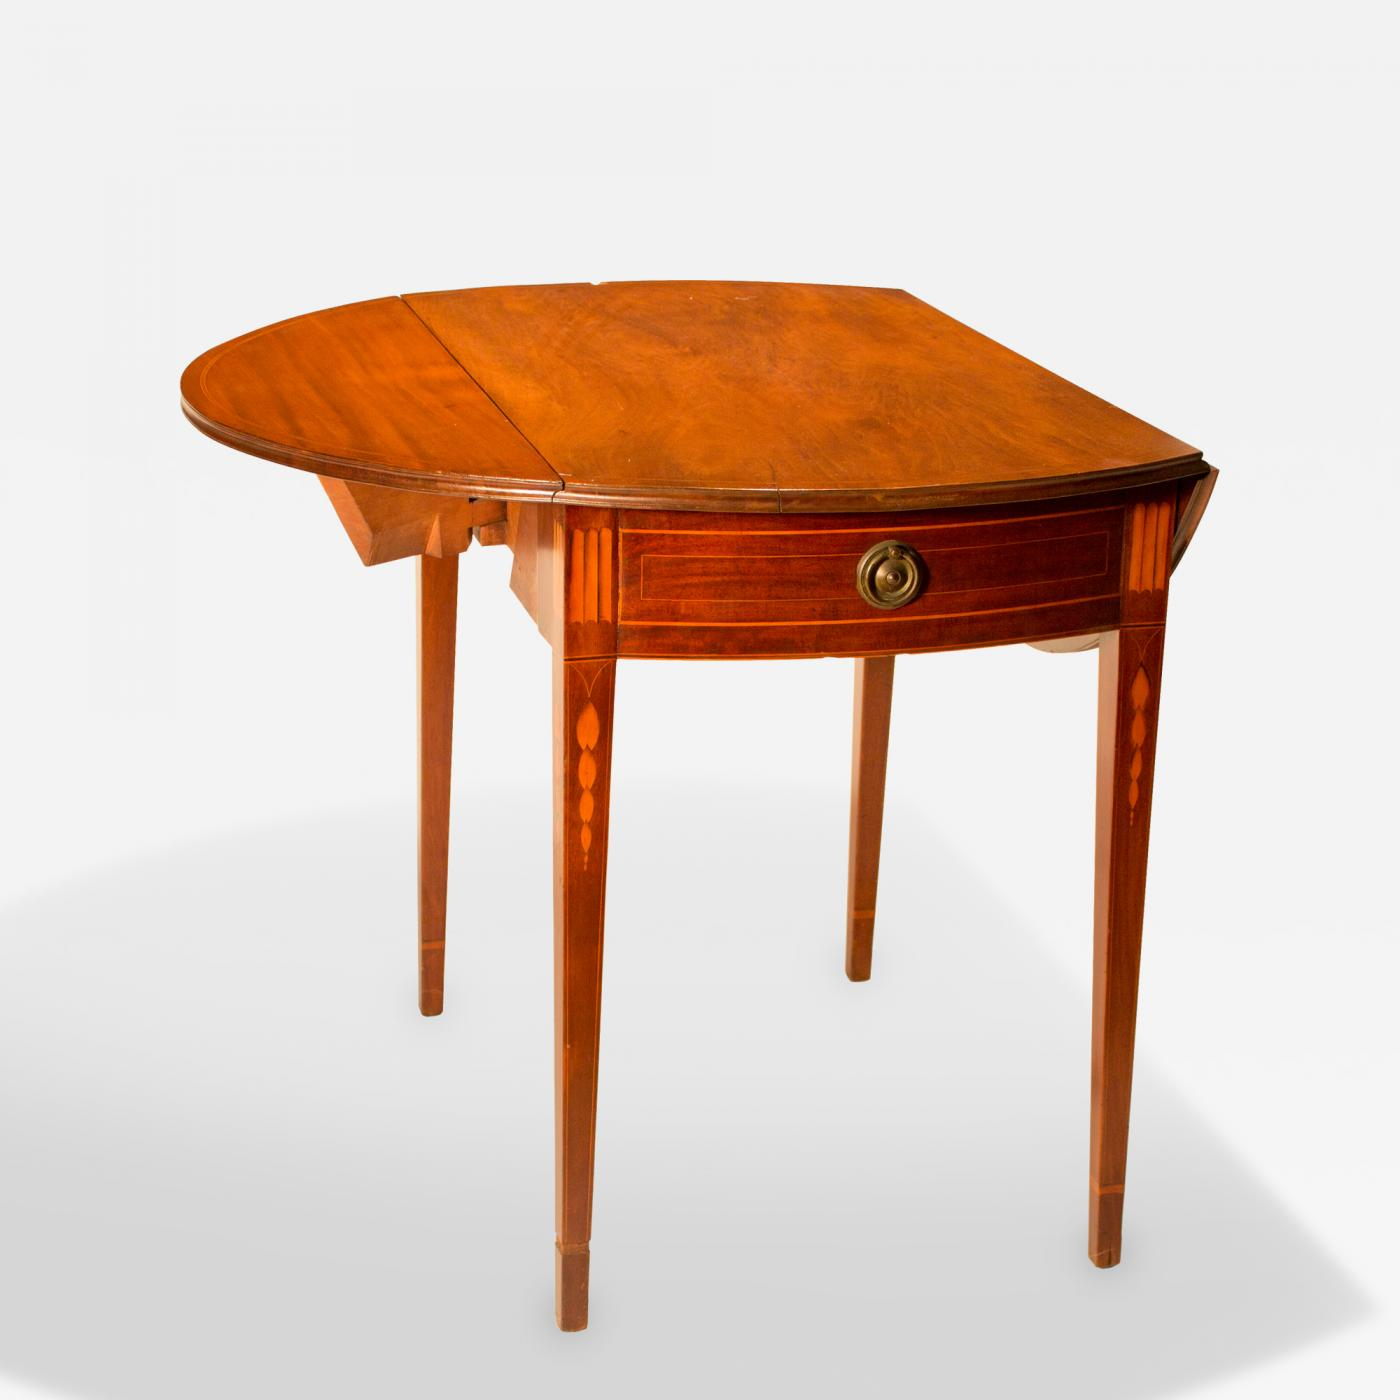 Ordinaire Listings / Furniture / Tables / Drop Leaf Tables · Walnut Hepplewhite Pembroke  Table